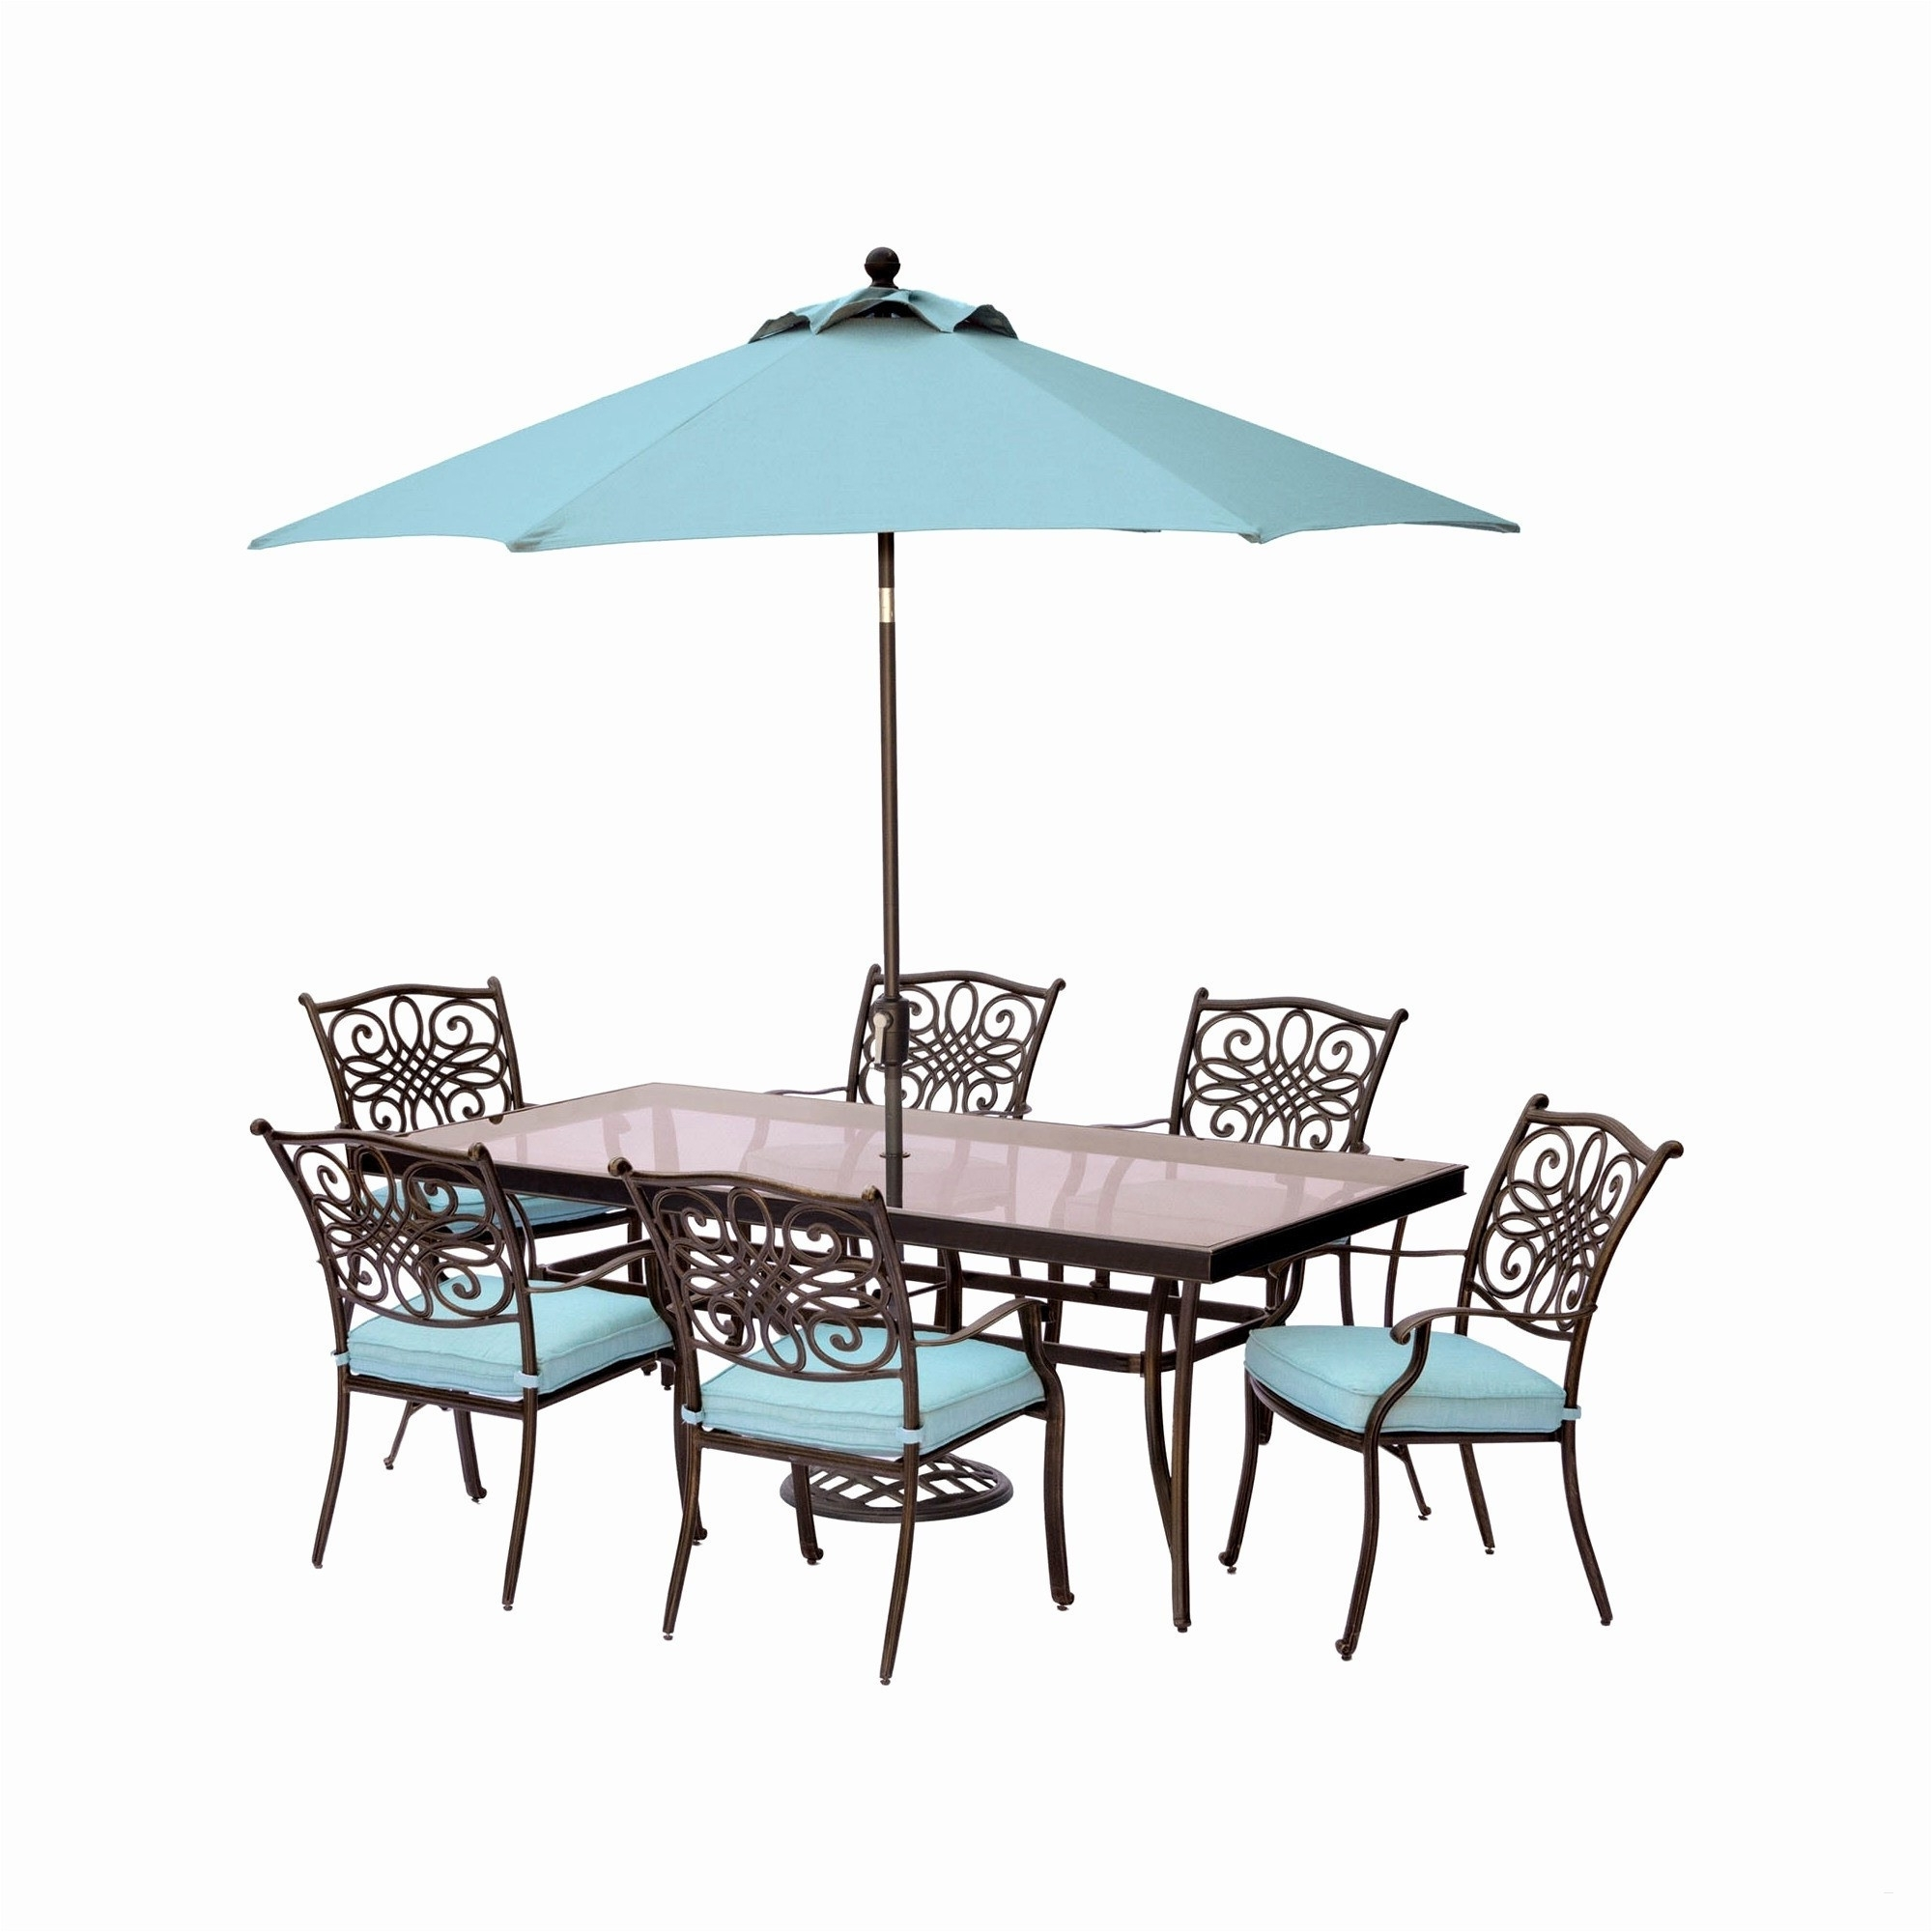 Kmart Patio Umbrellas Luxurious 40 Lovely Wicker Chair Seat Cushions With Regard To 2019 Kmart Patio Umbrellas (View 11 of 20)